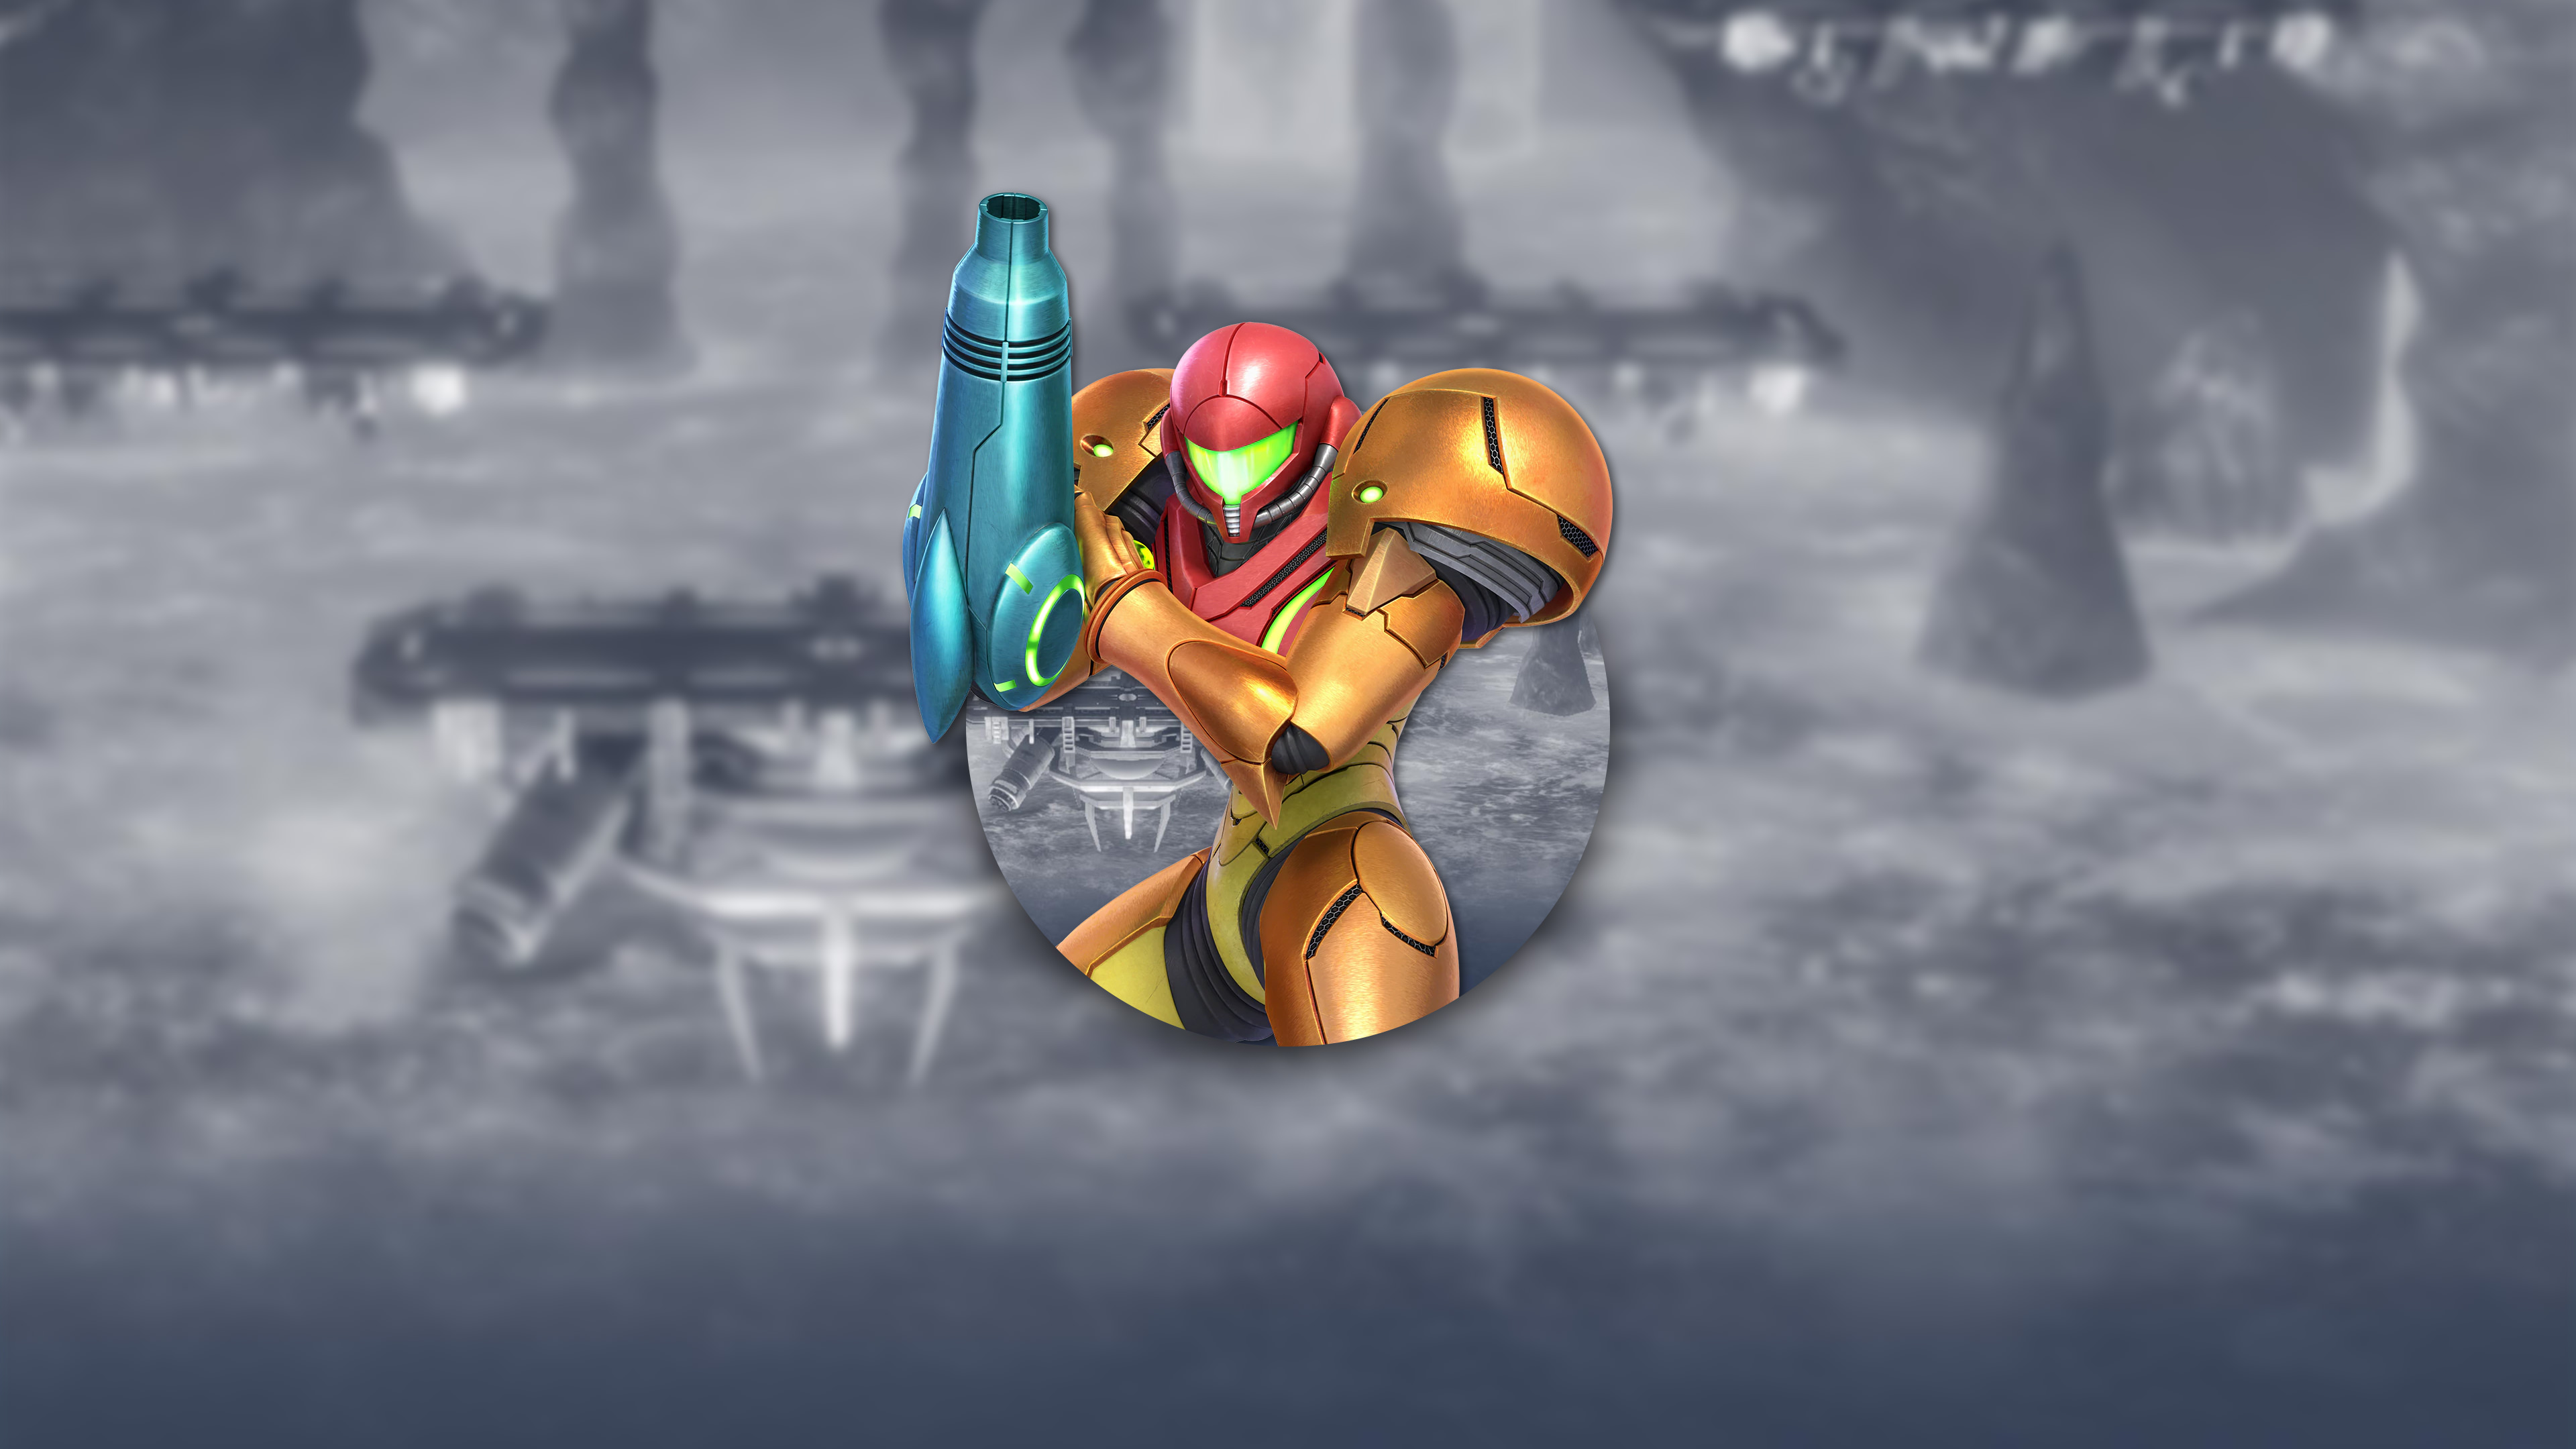 super smash bros ultimate samus uhd 4k wallpaper